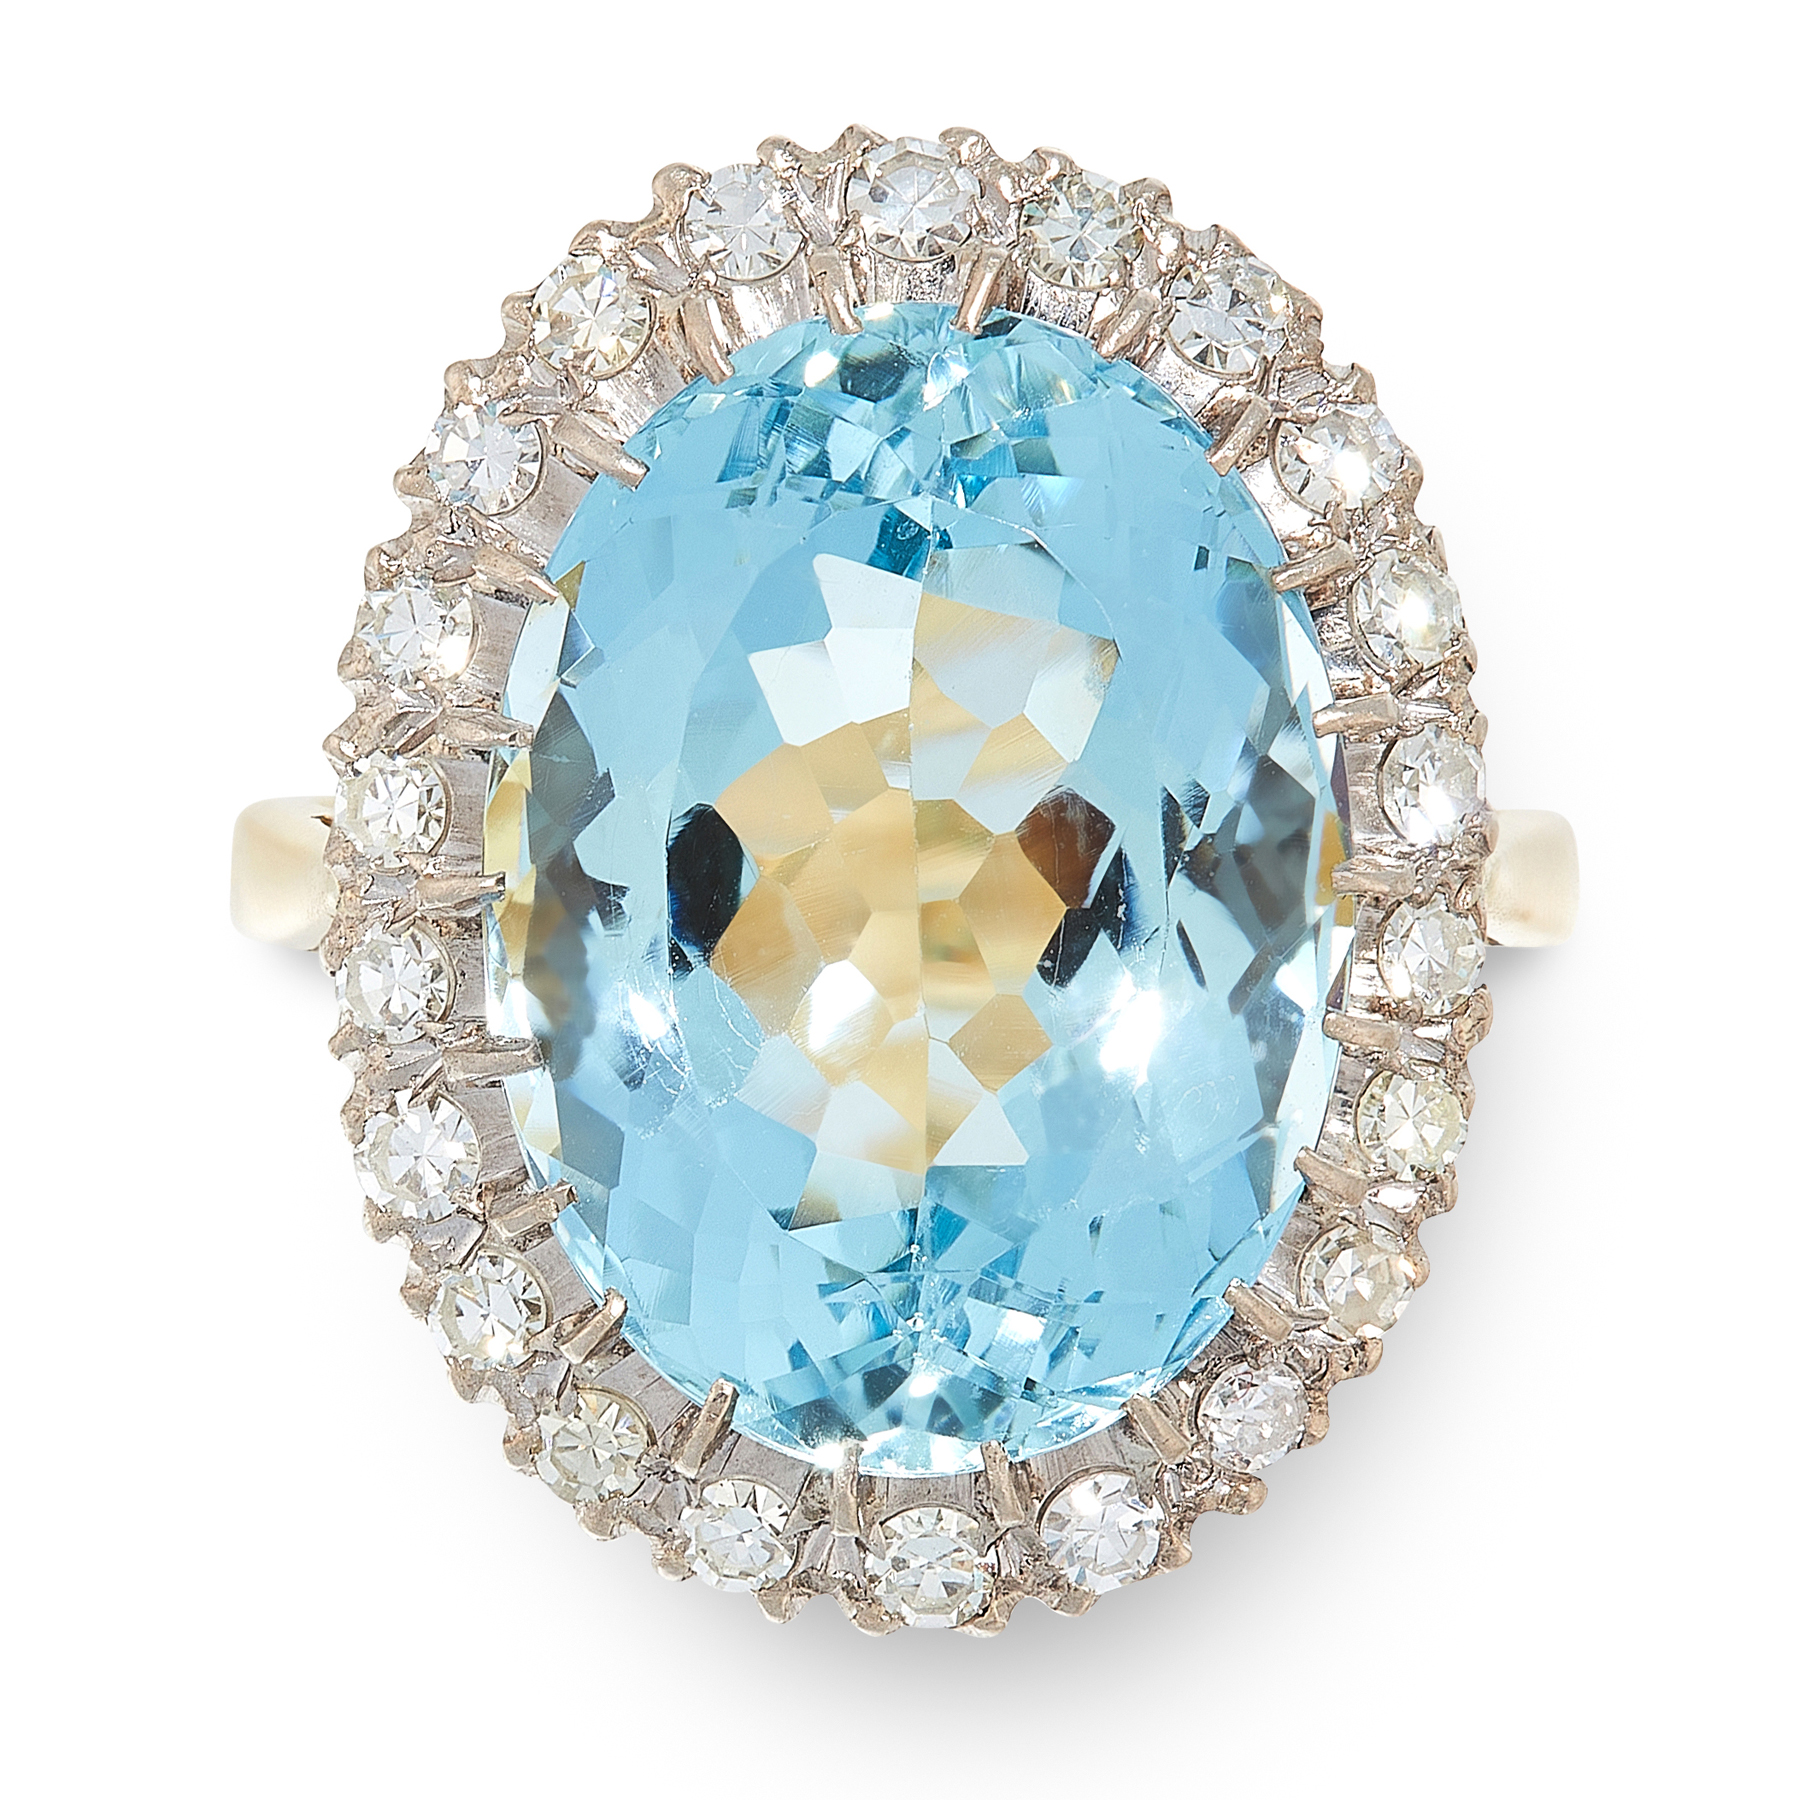 AN AQUAMARINE AND DIAMOND DRESS RING in 18ct yellow and white gold, set with an oval cut